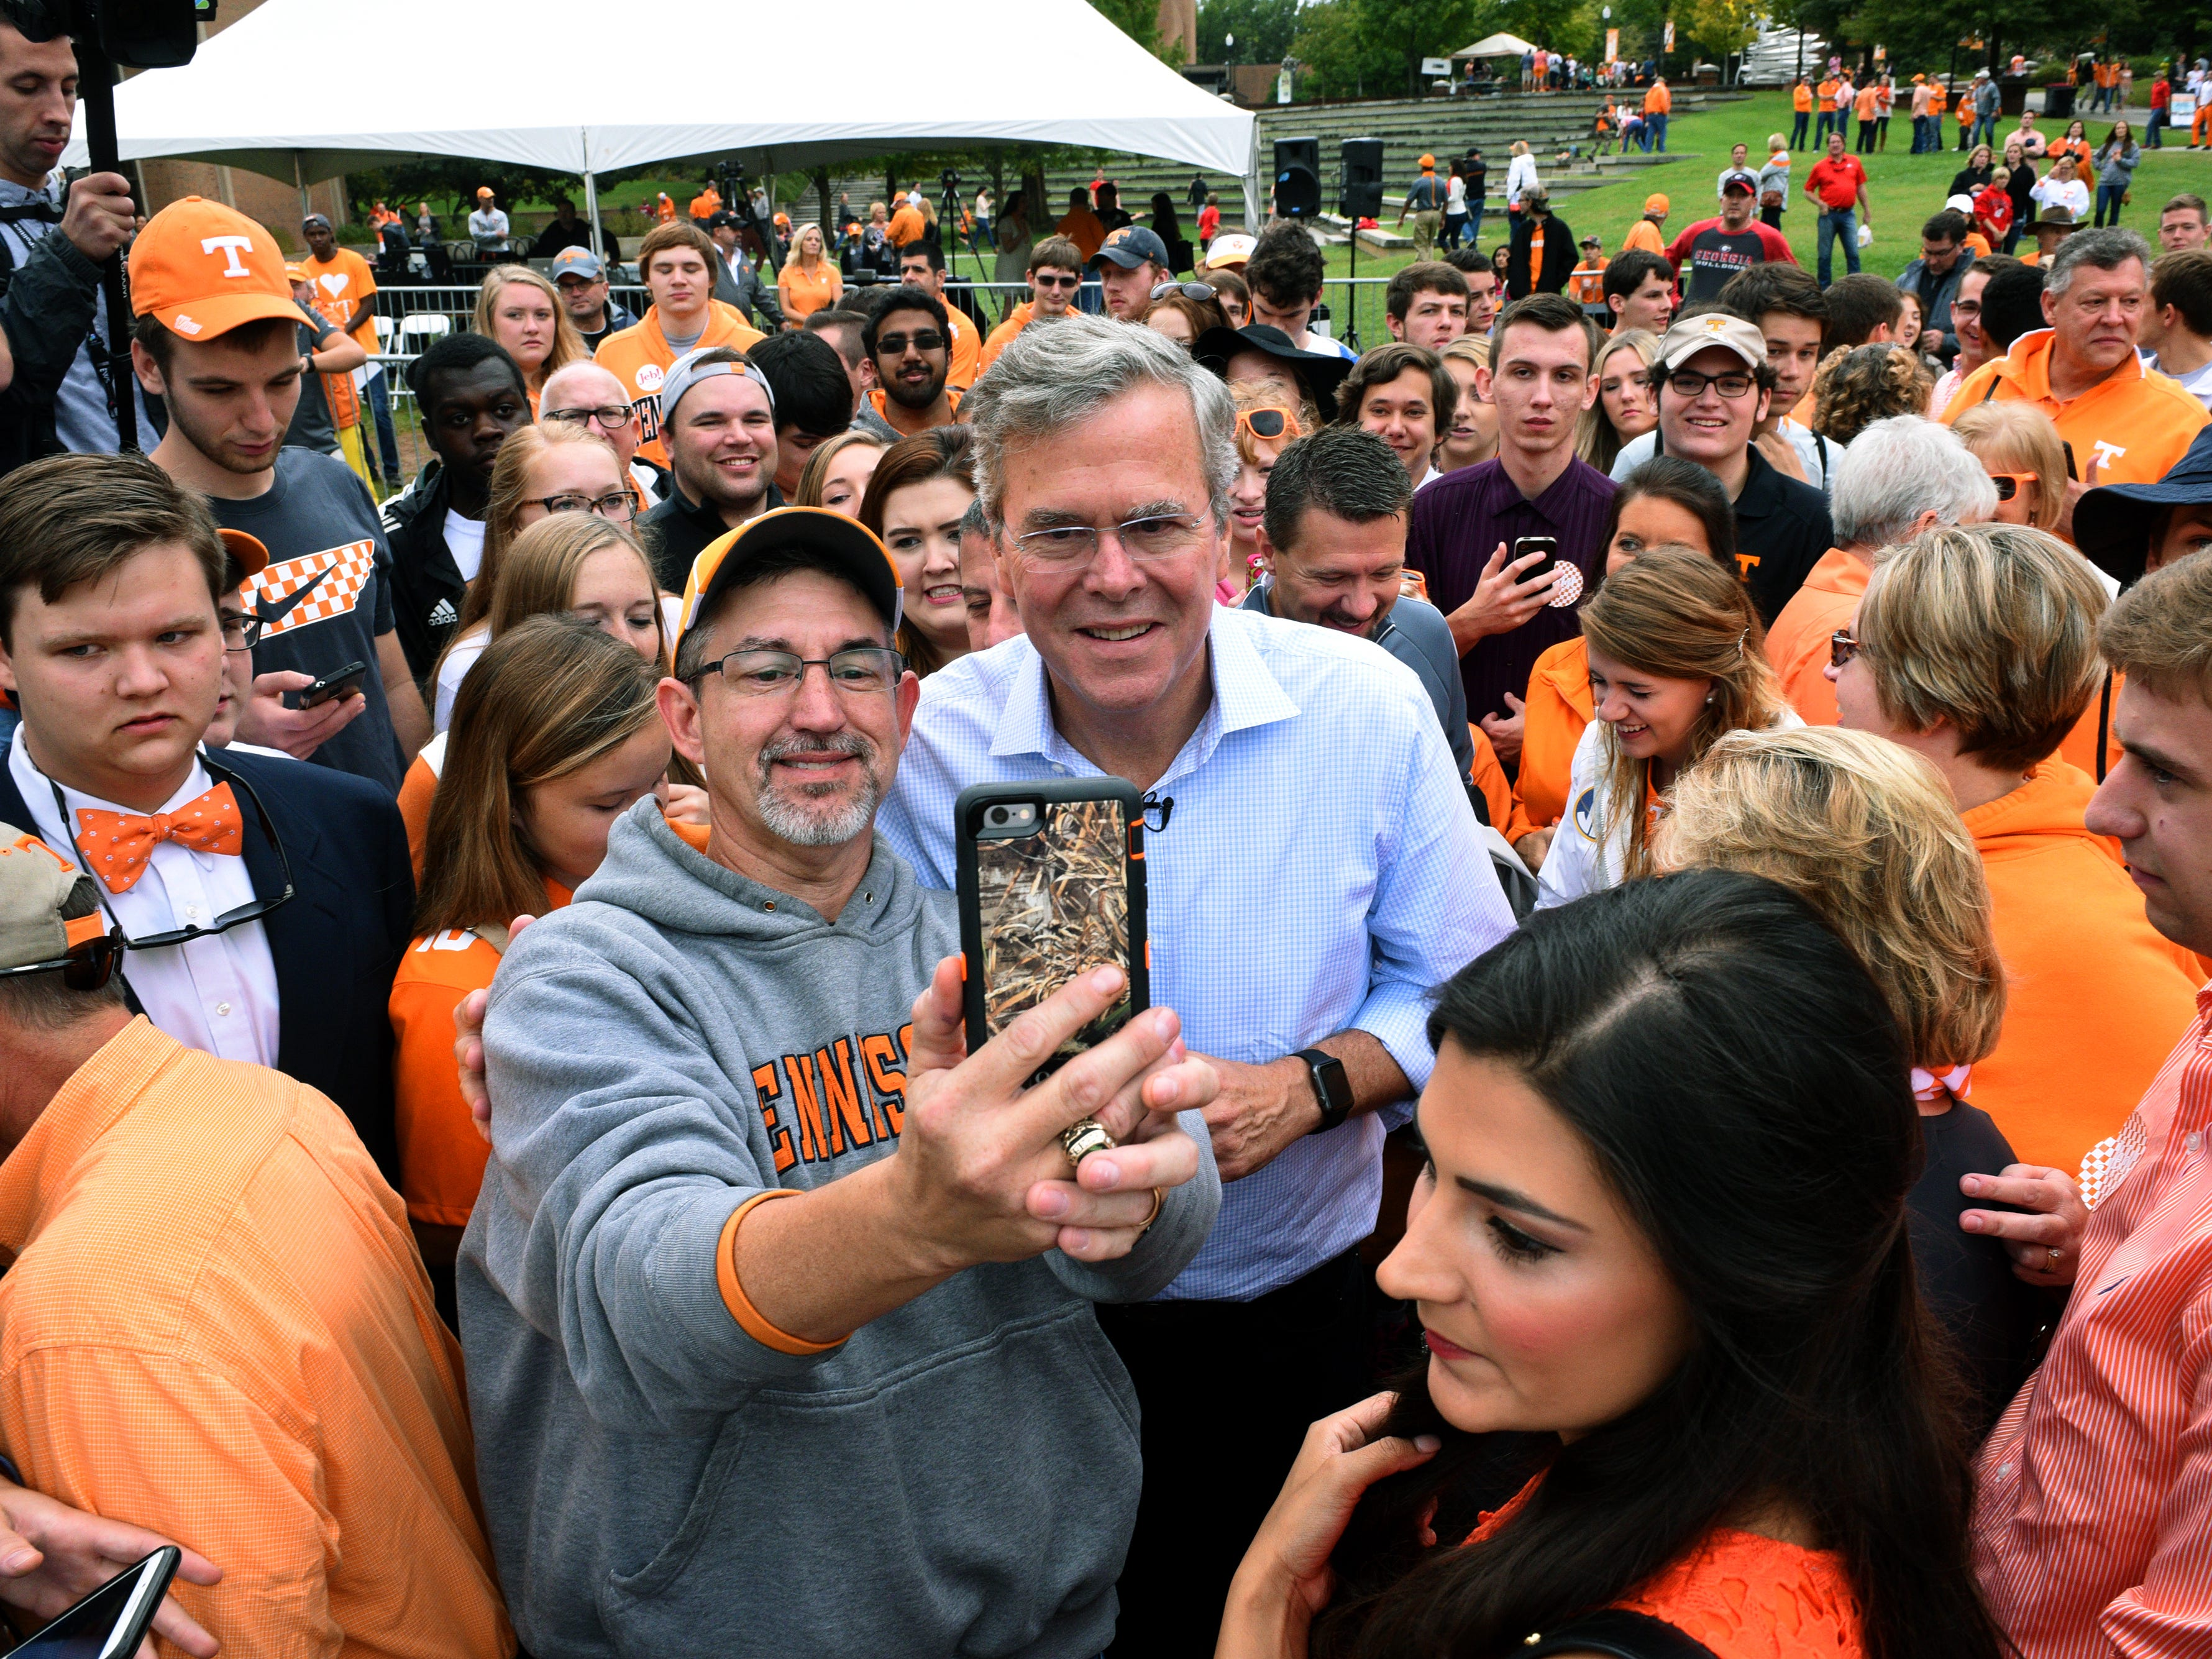 Jeb Bush posed after every request for a selfie while visiting the University of Tennessee campus before the Tennessee vs. Georgia game Saturday, Oct. 10, 2015.